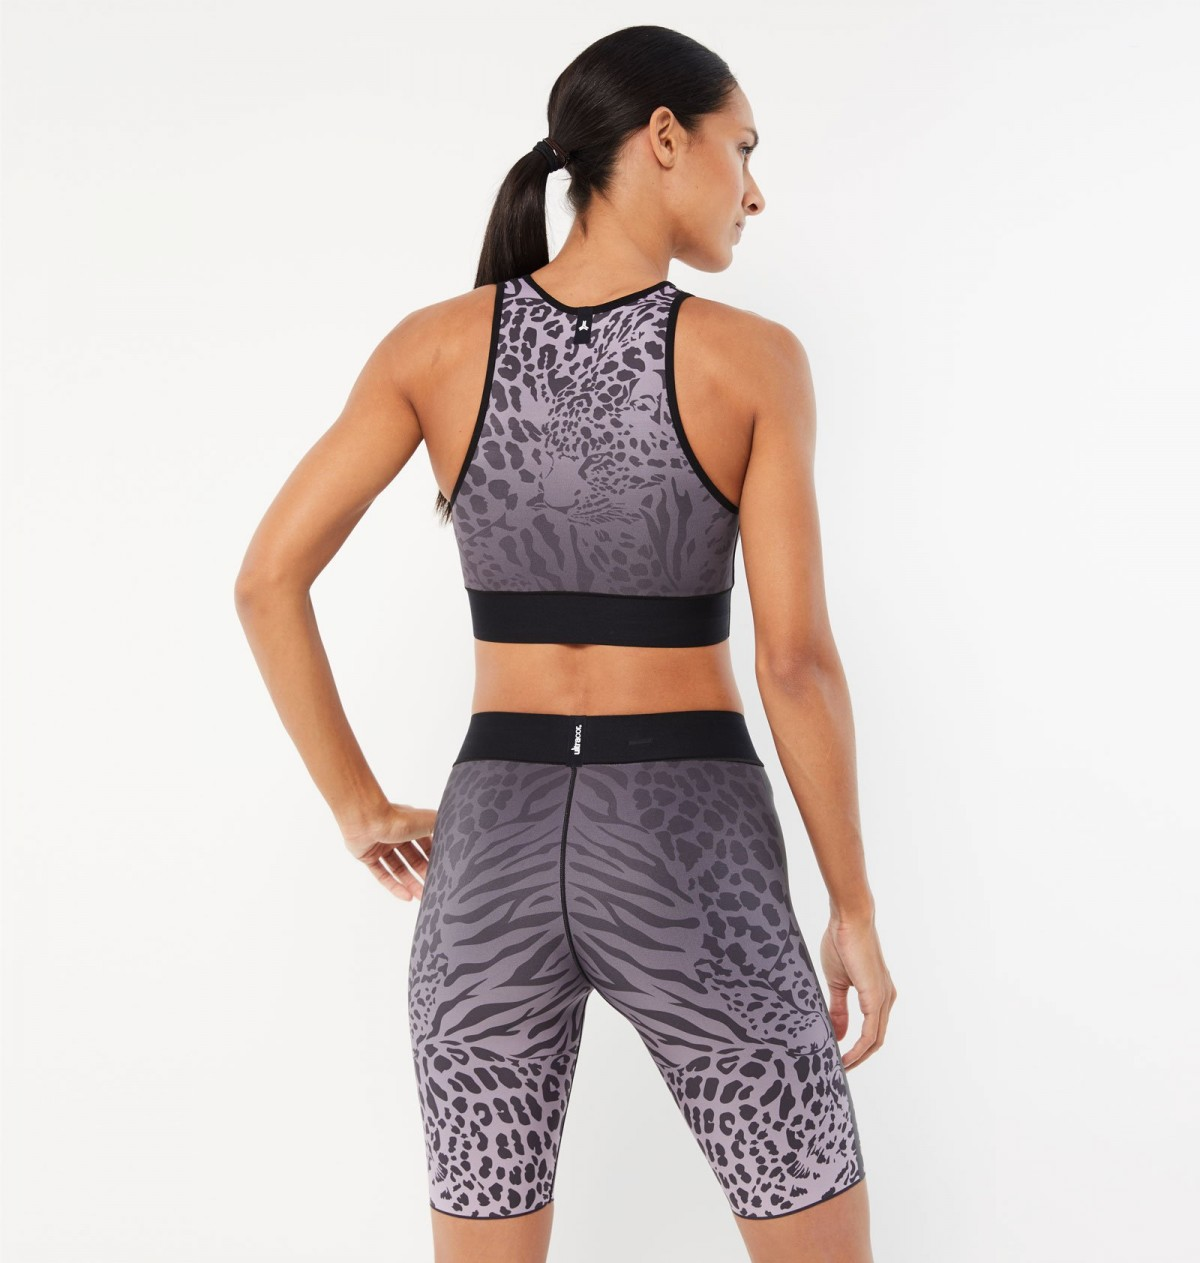 Lavender and Graphite Panthera Crop Top